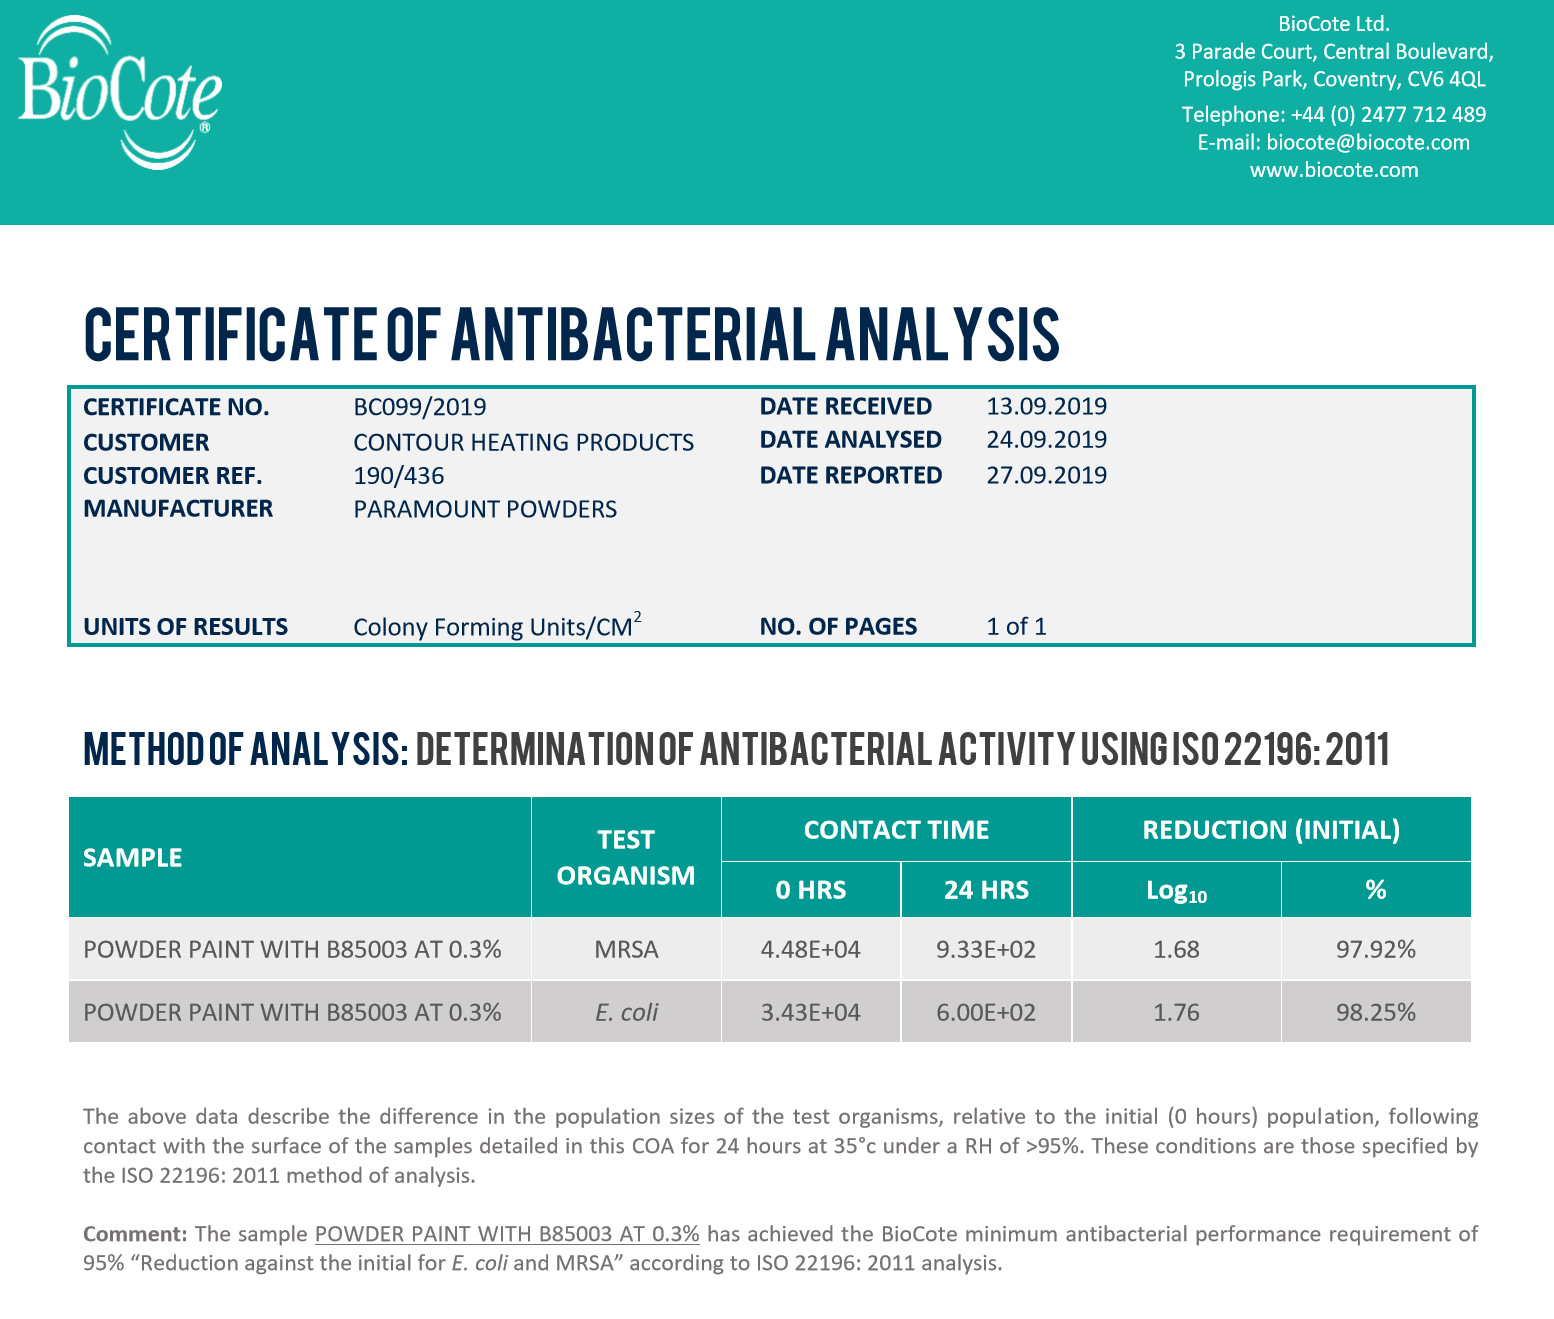 biocote certificate of analysis for contour heating-1